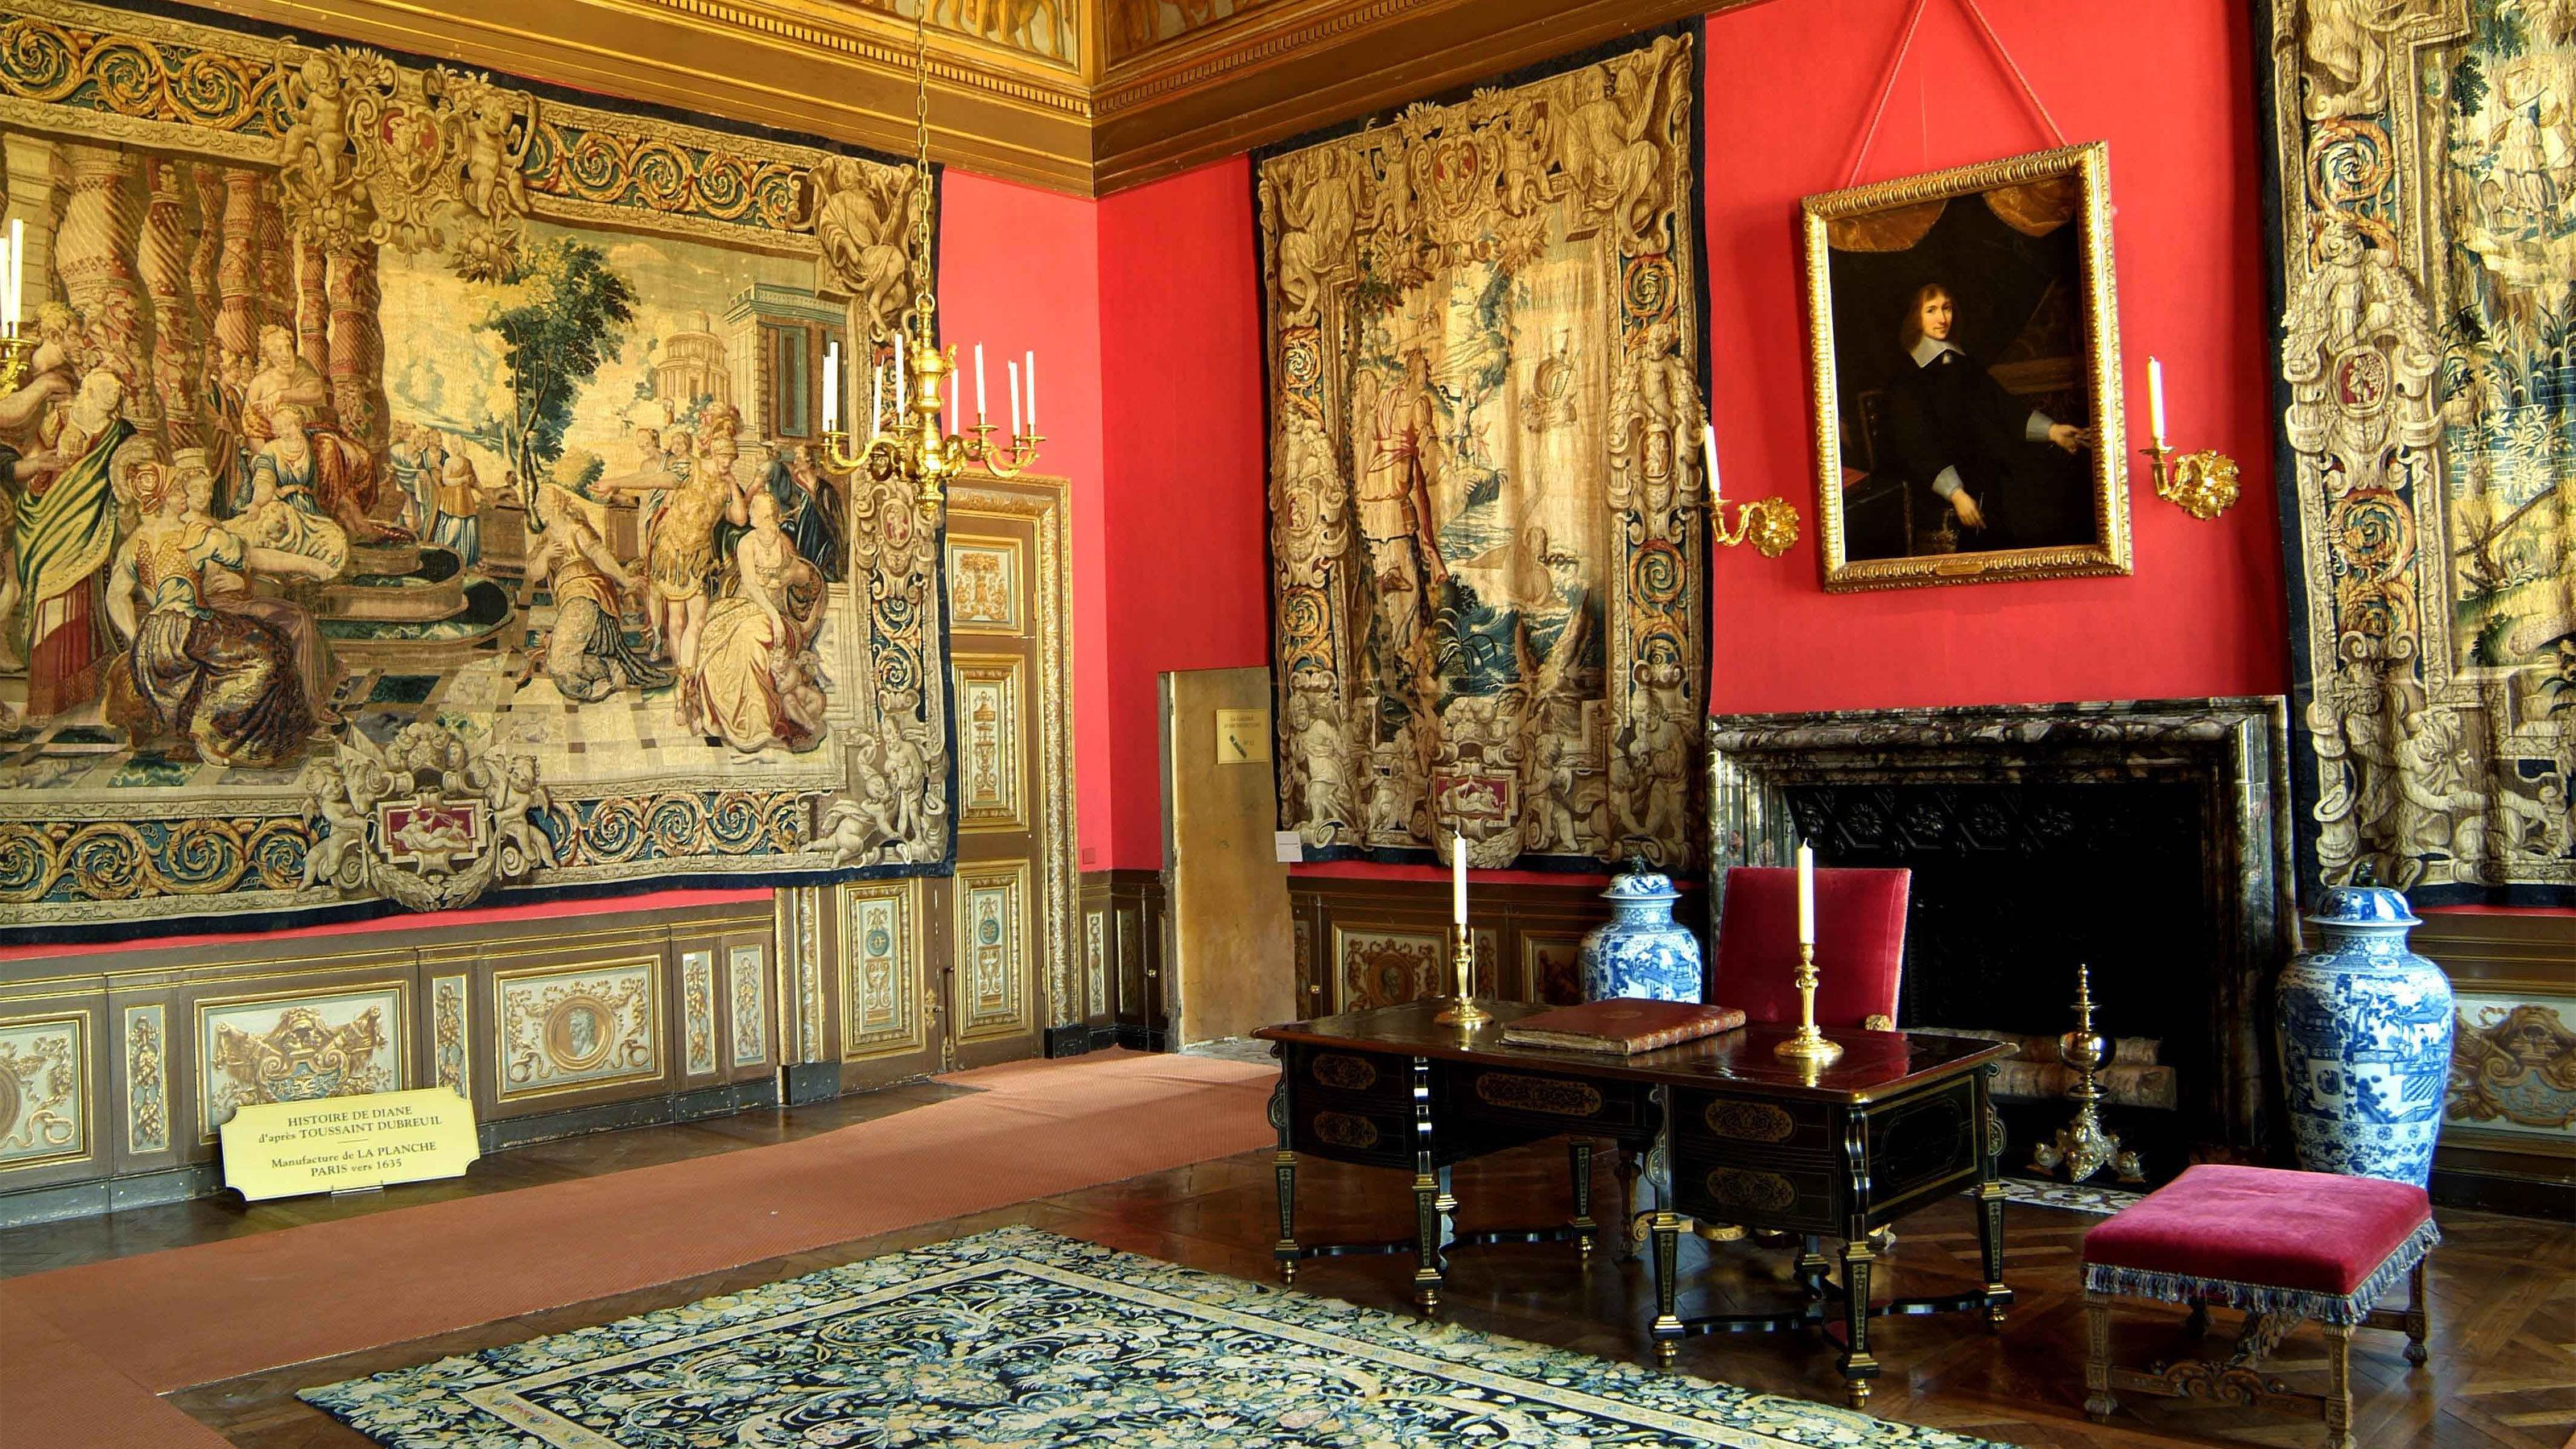 Tapestry covered walls inside Vaux Le Vicomte.